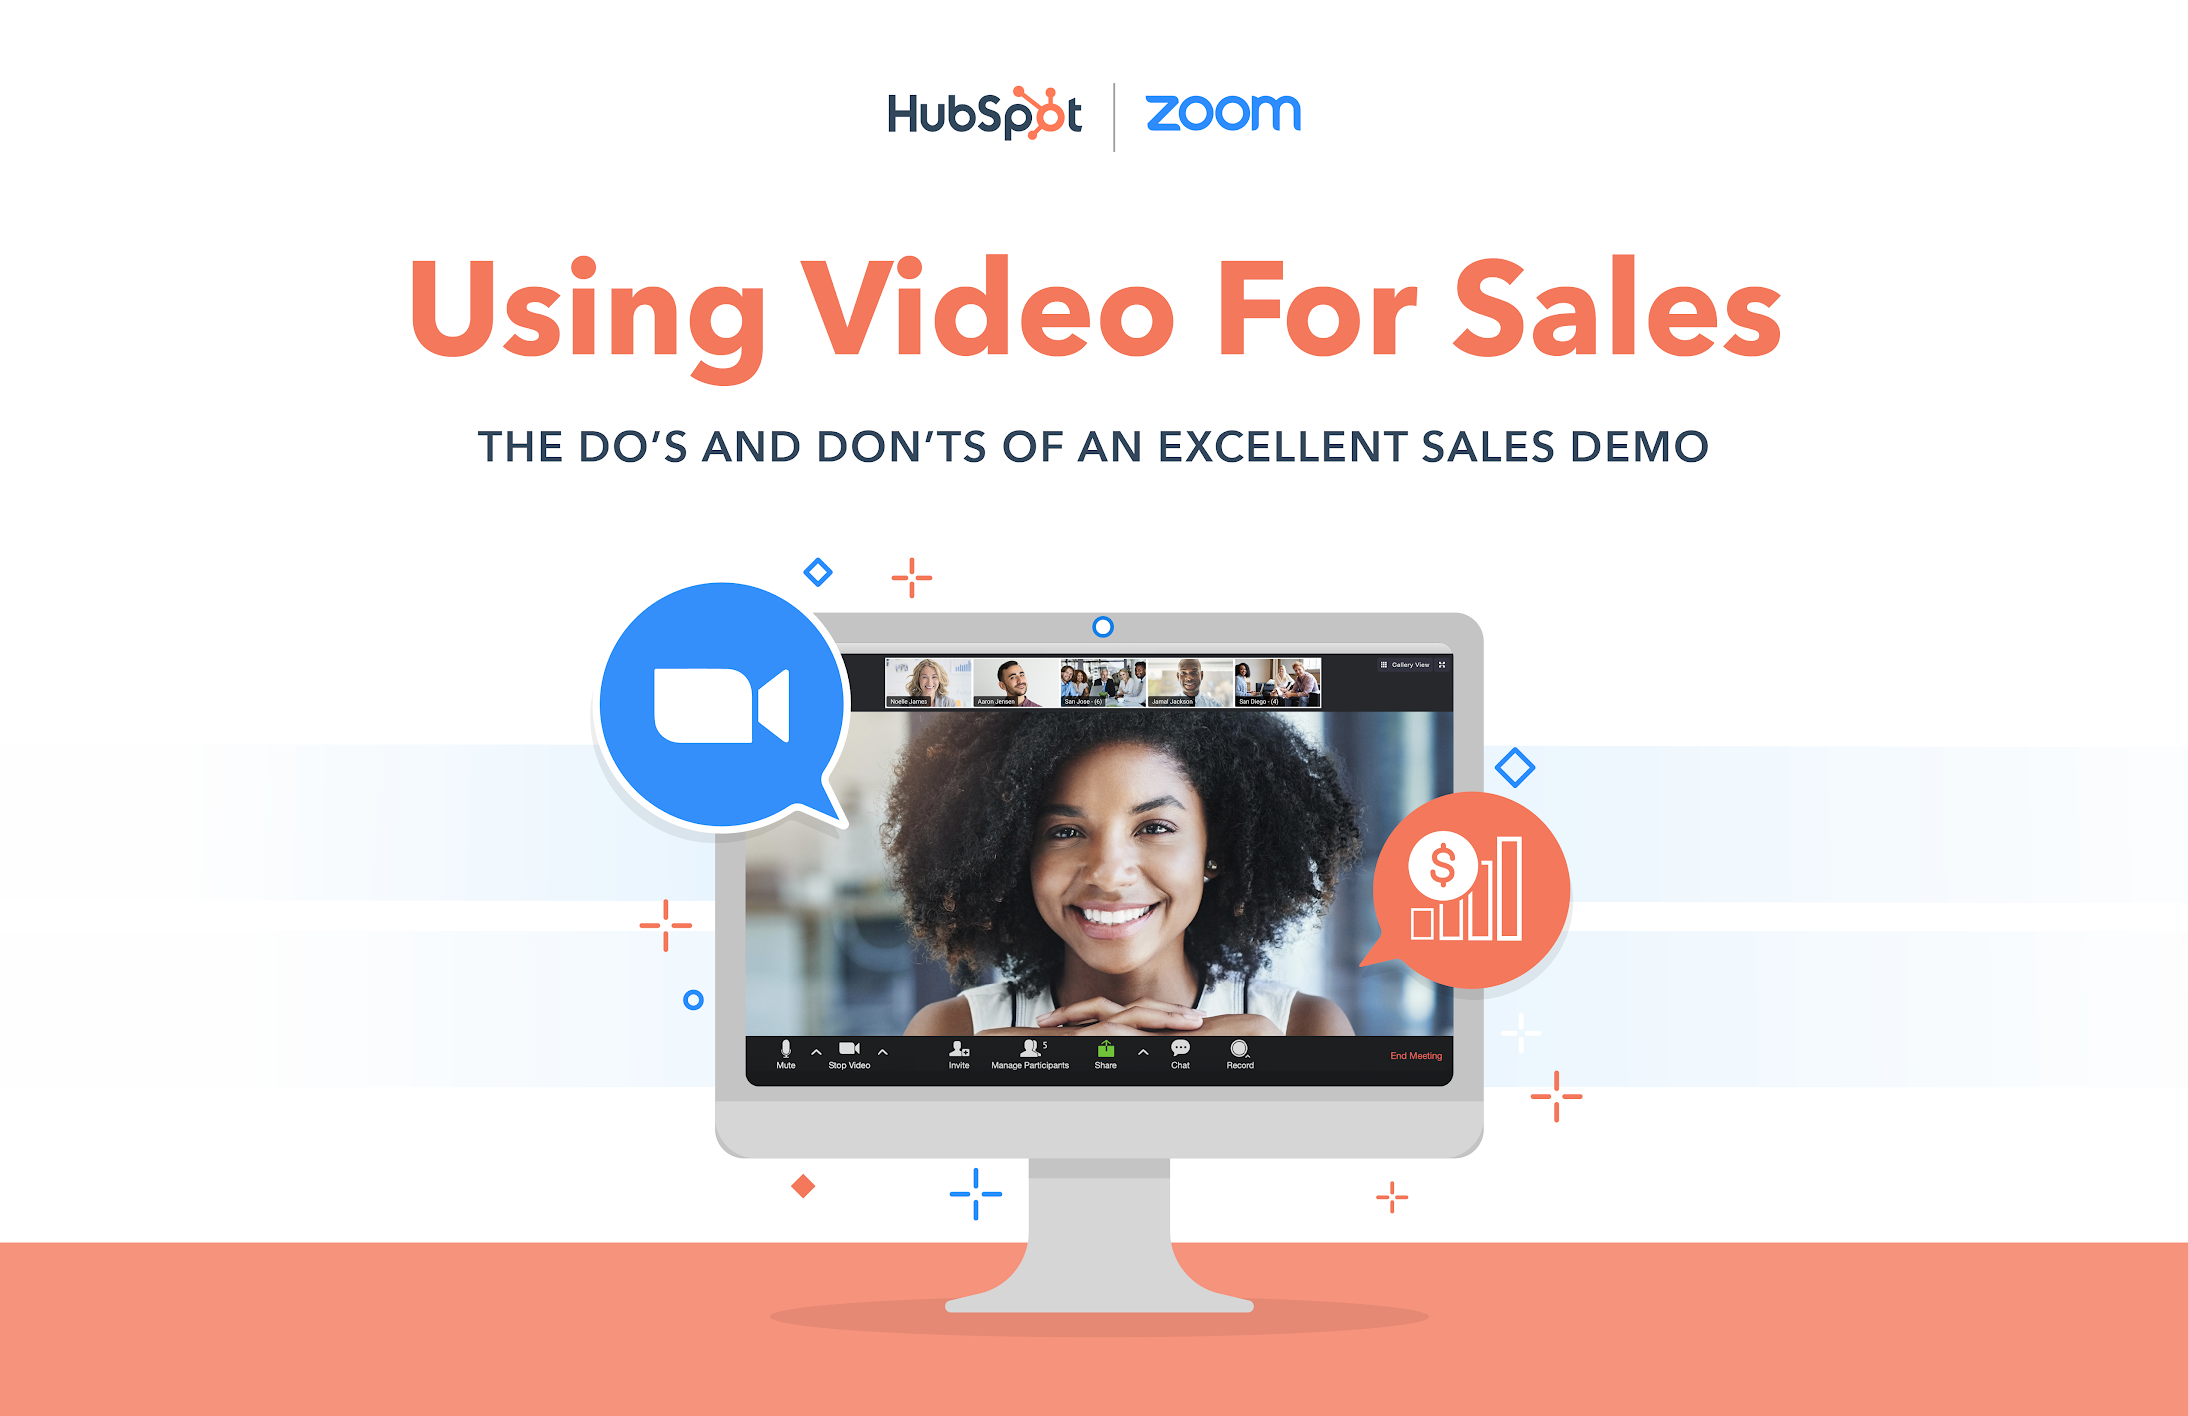 HubSpot and Zoom